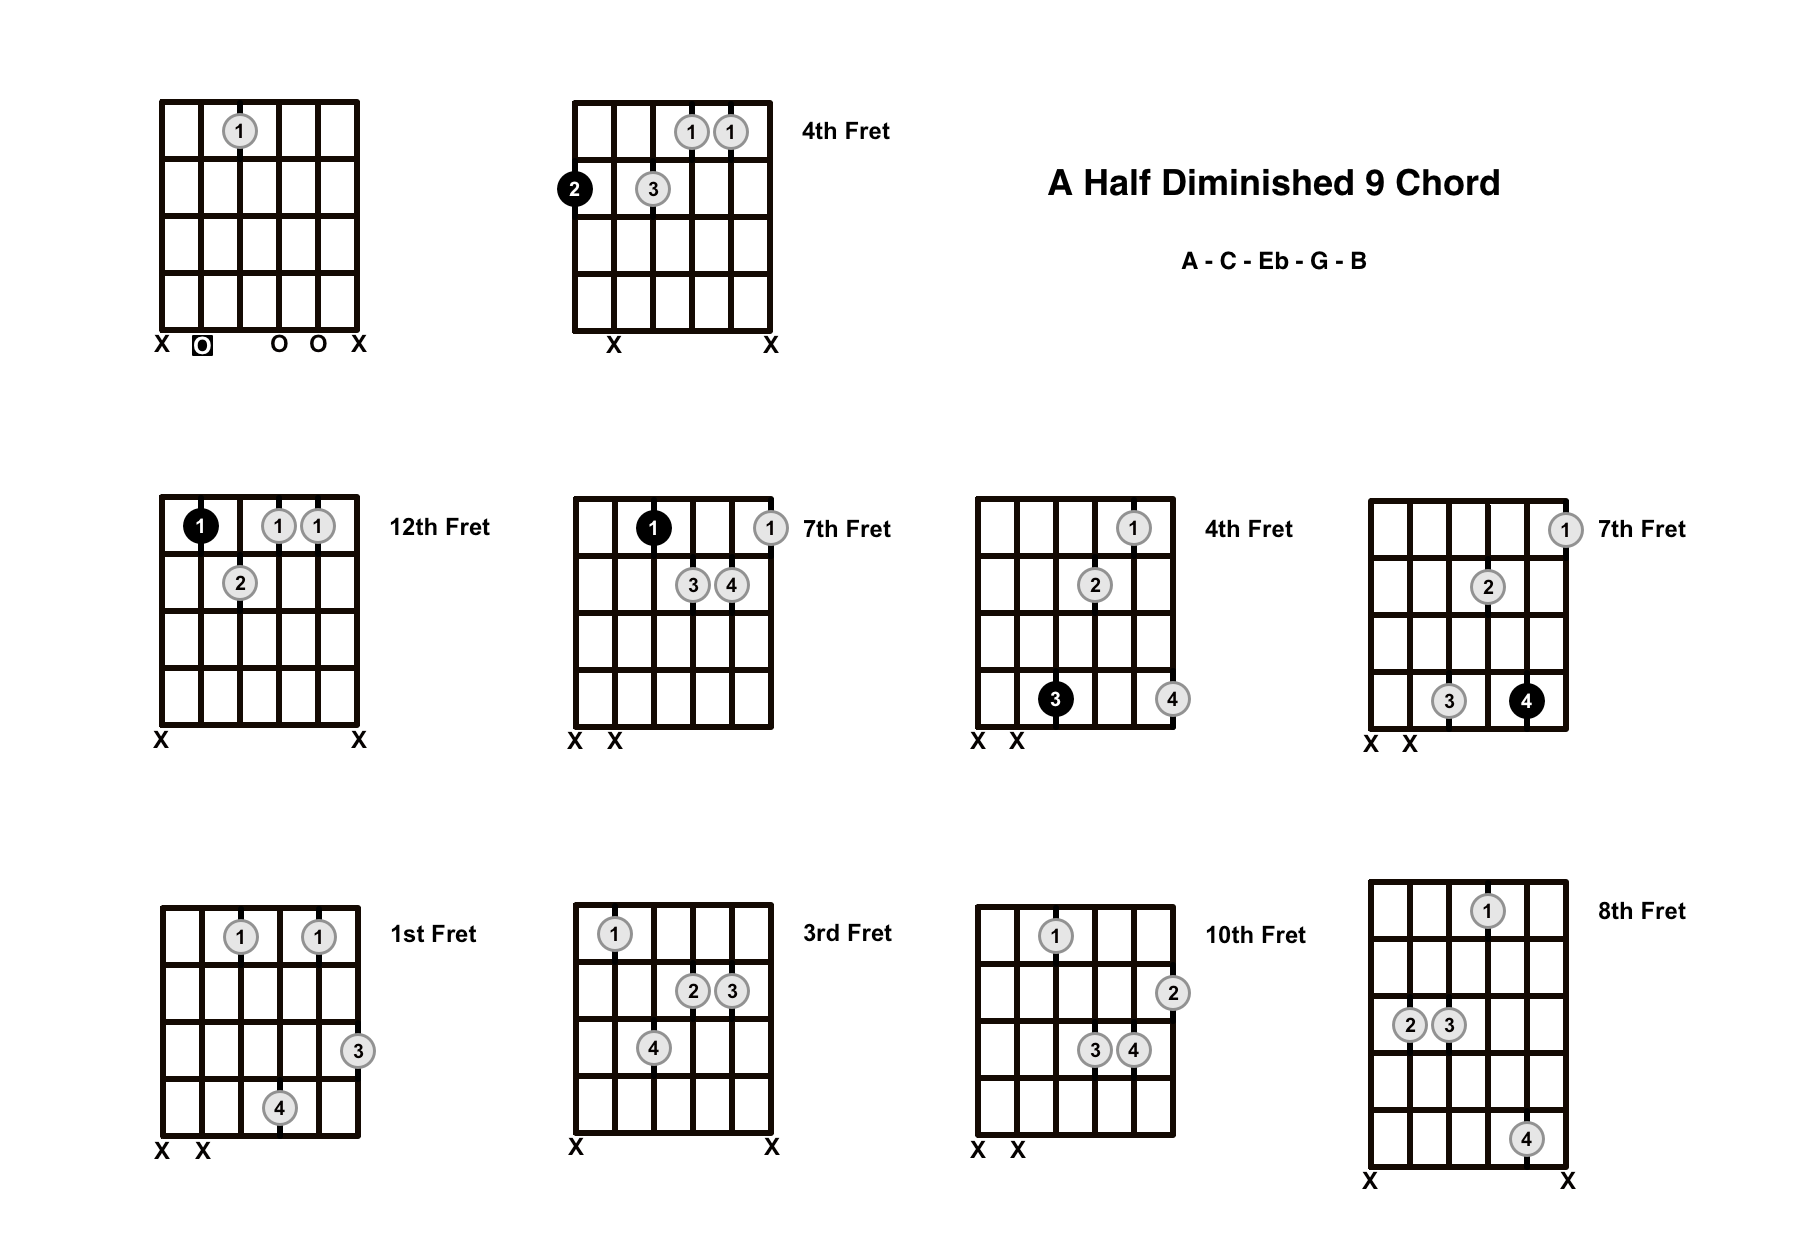 Am9b5 Chord On The Guitar (A Half Diminished 9) – Diagrams, Finger Positions and Theory